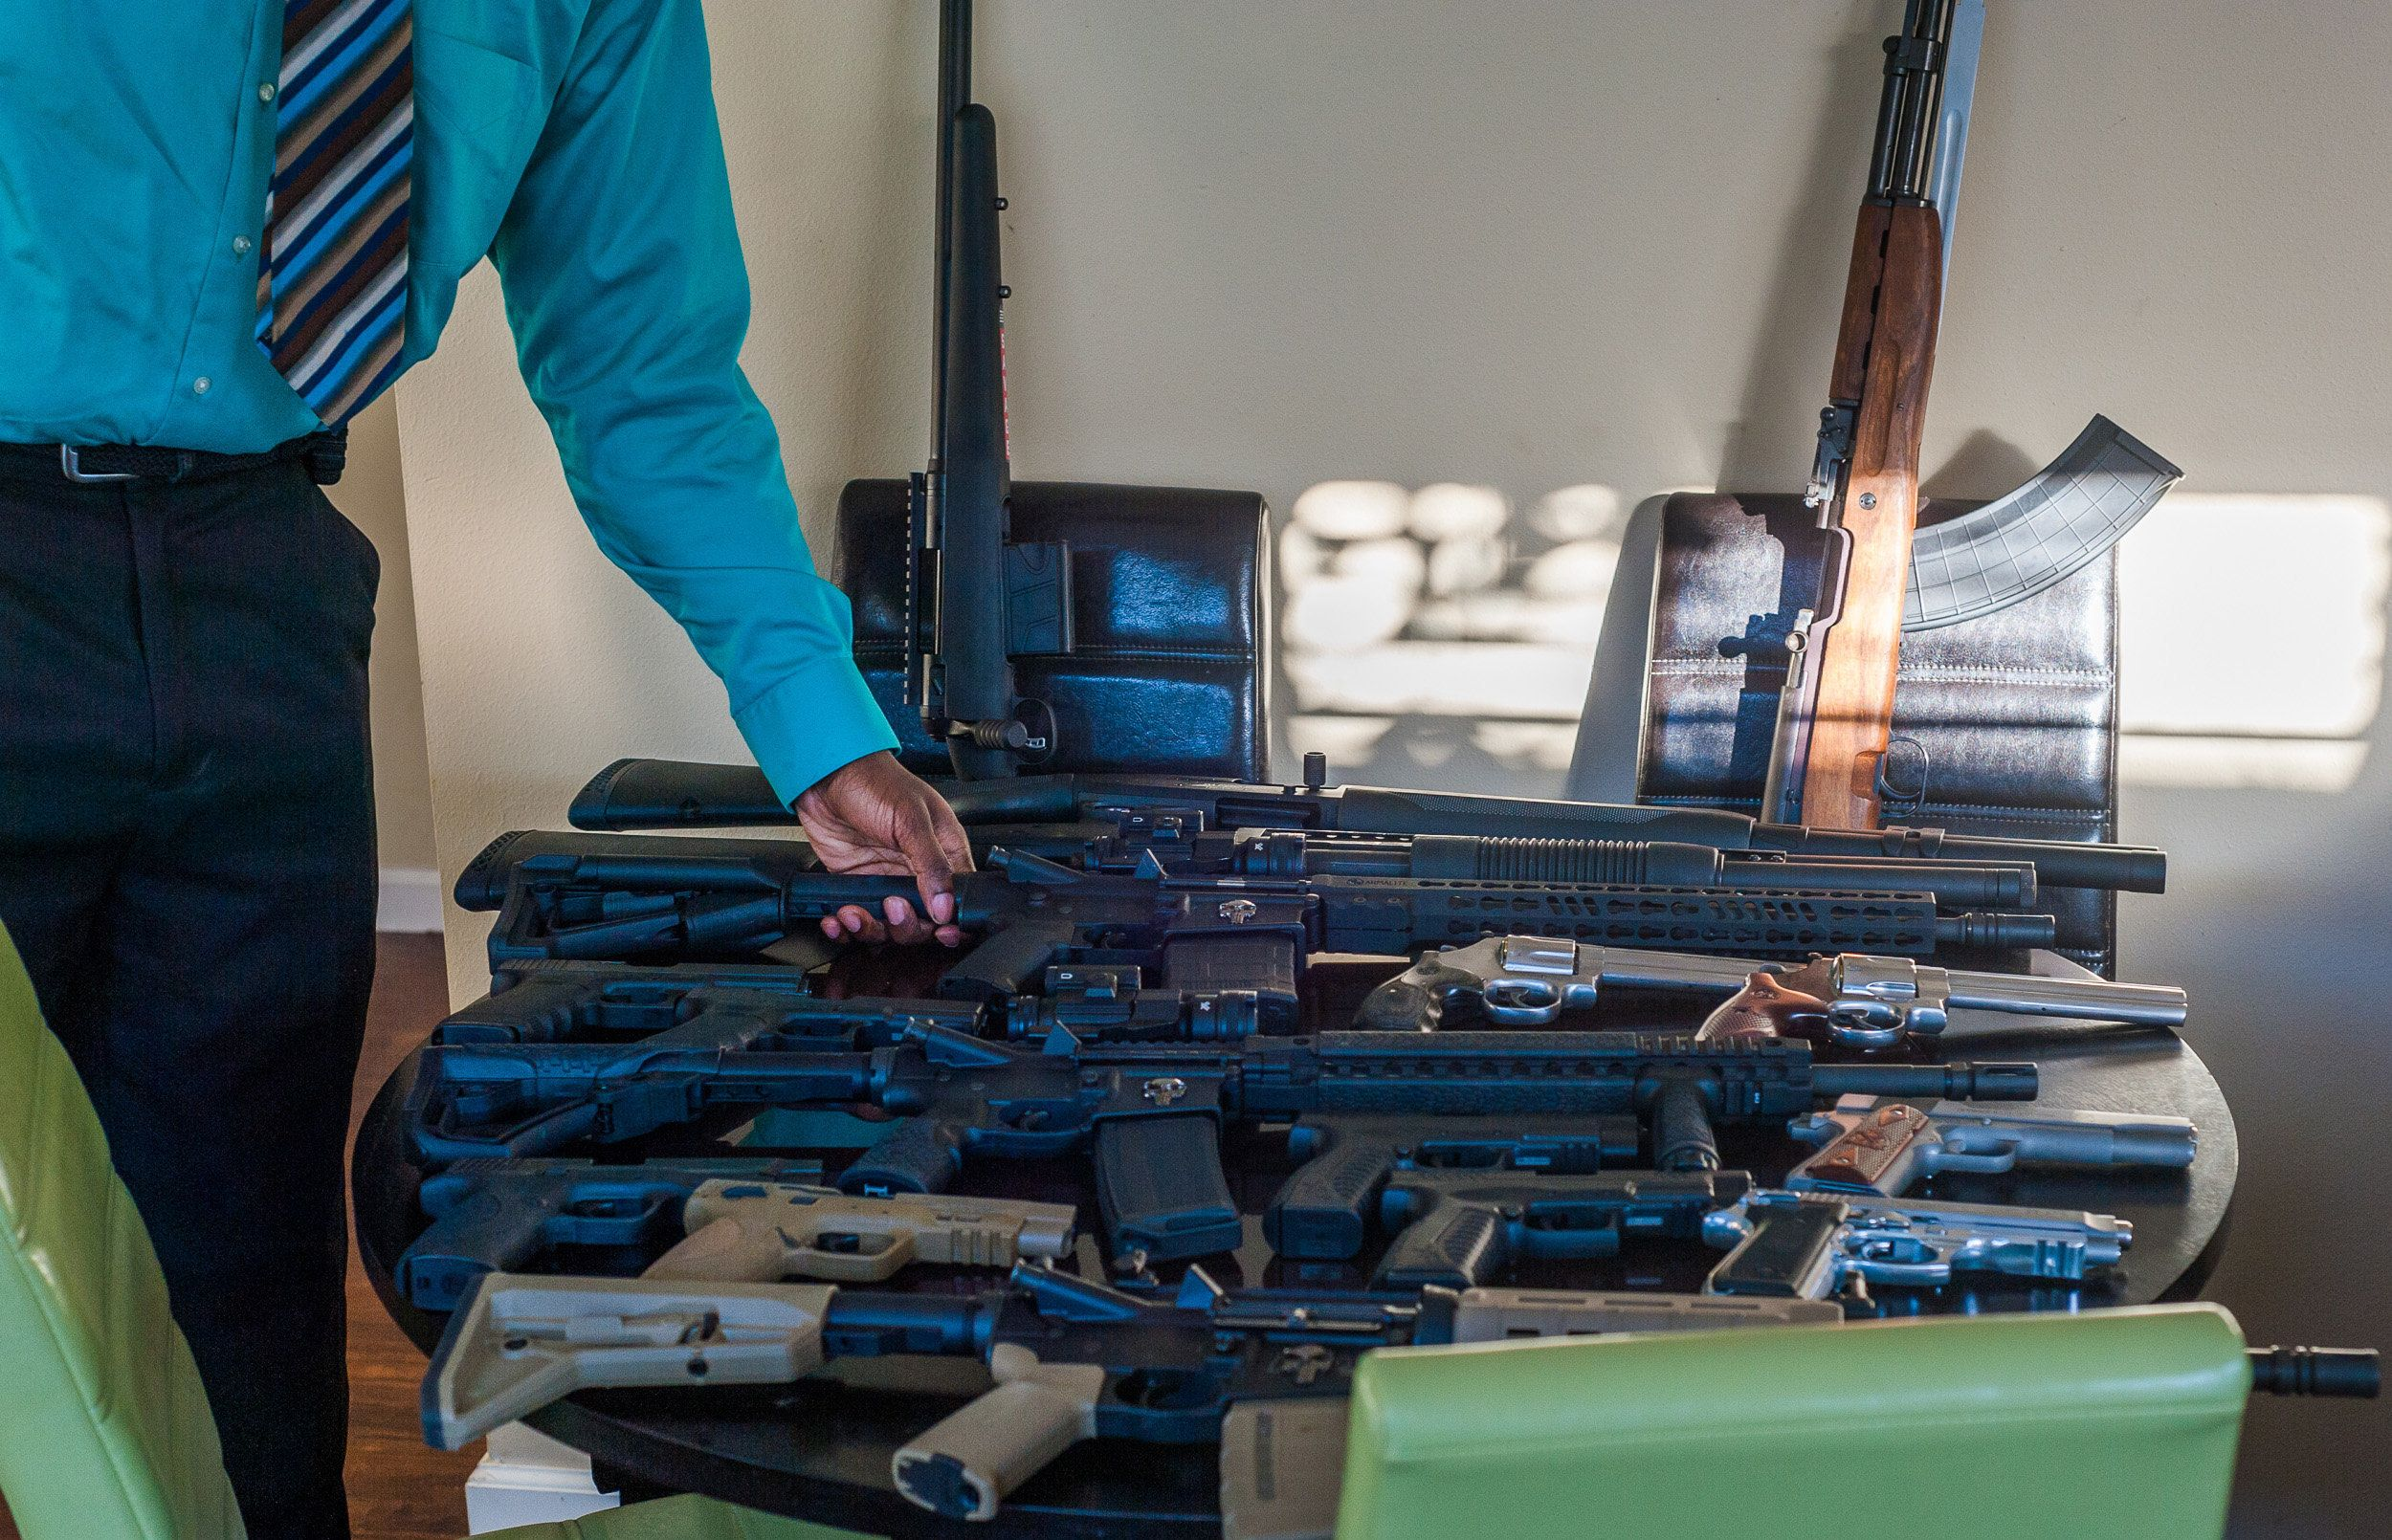 LeFlore and some of his gun collection.